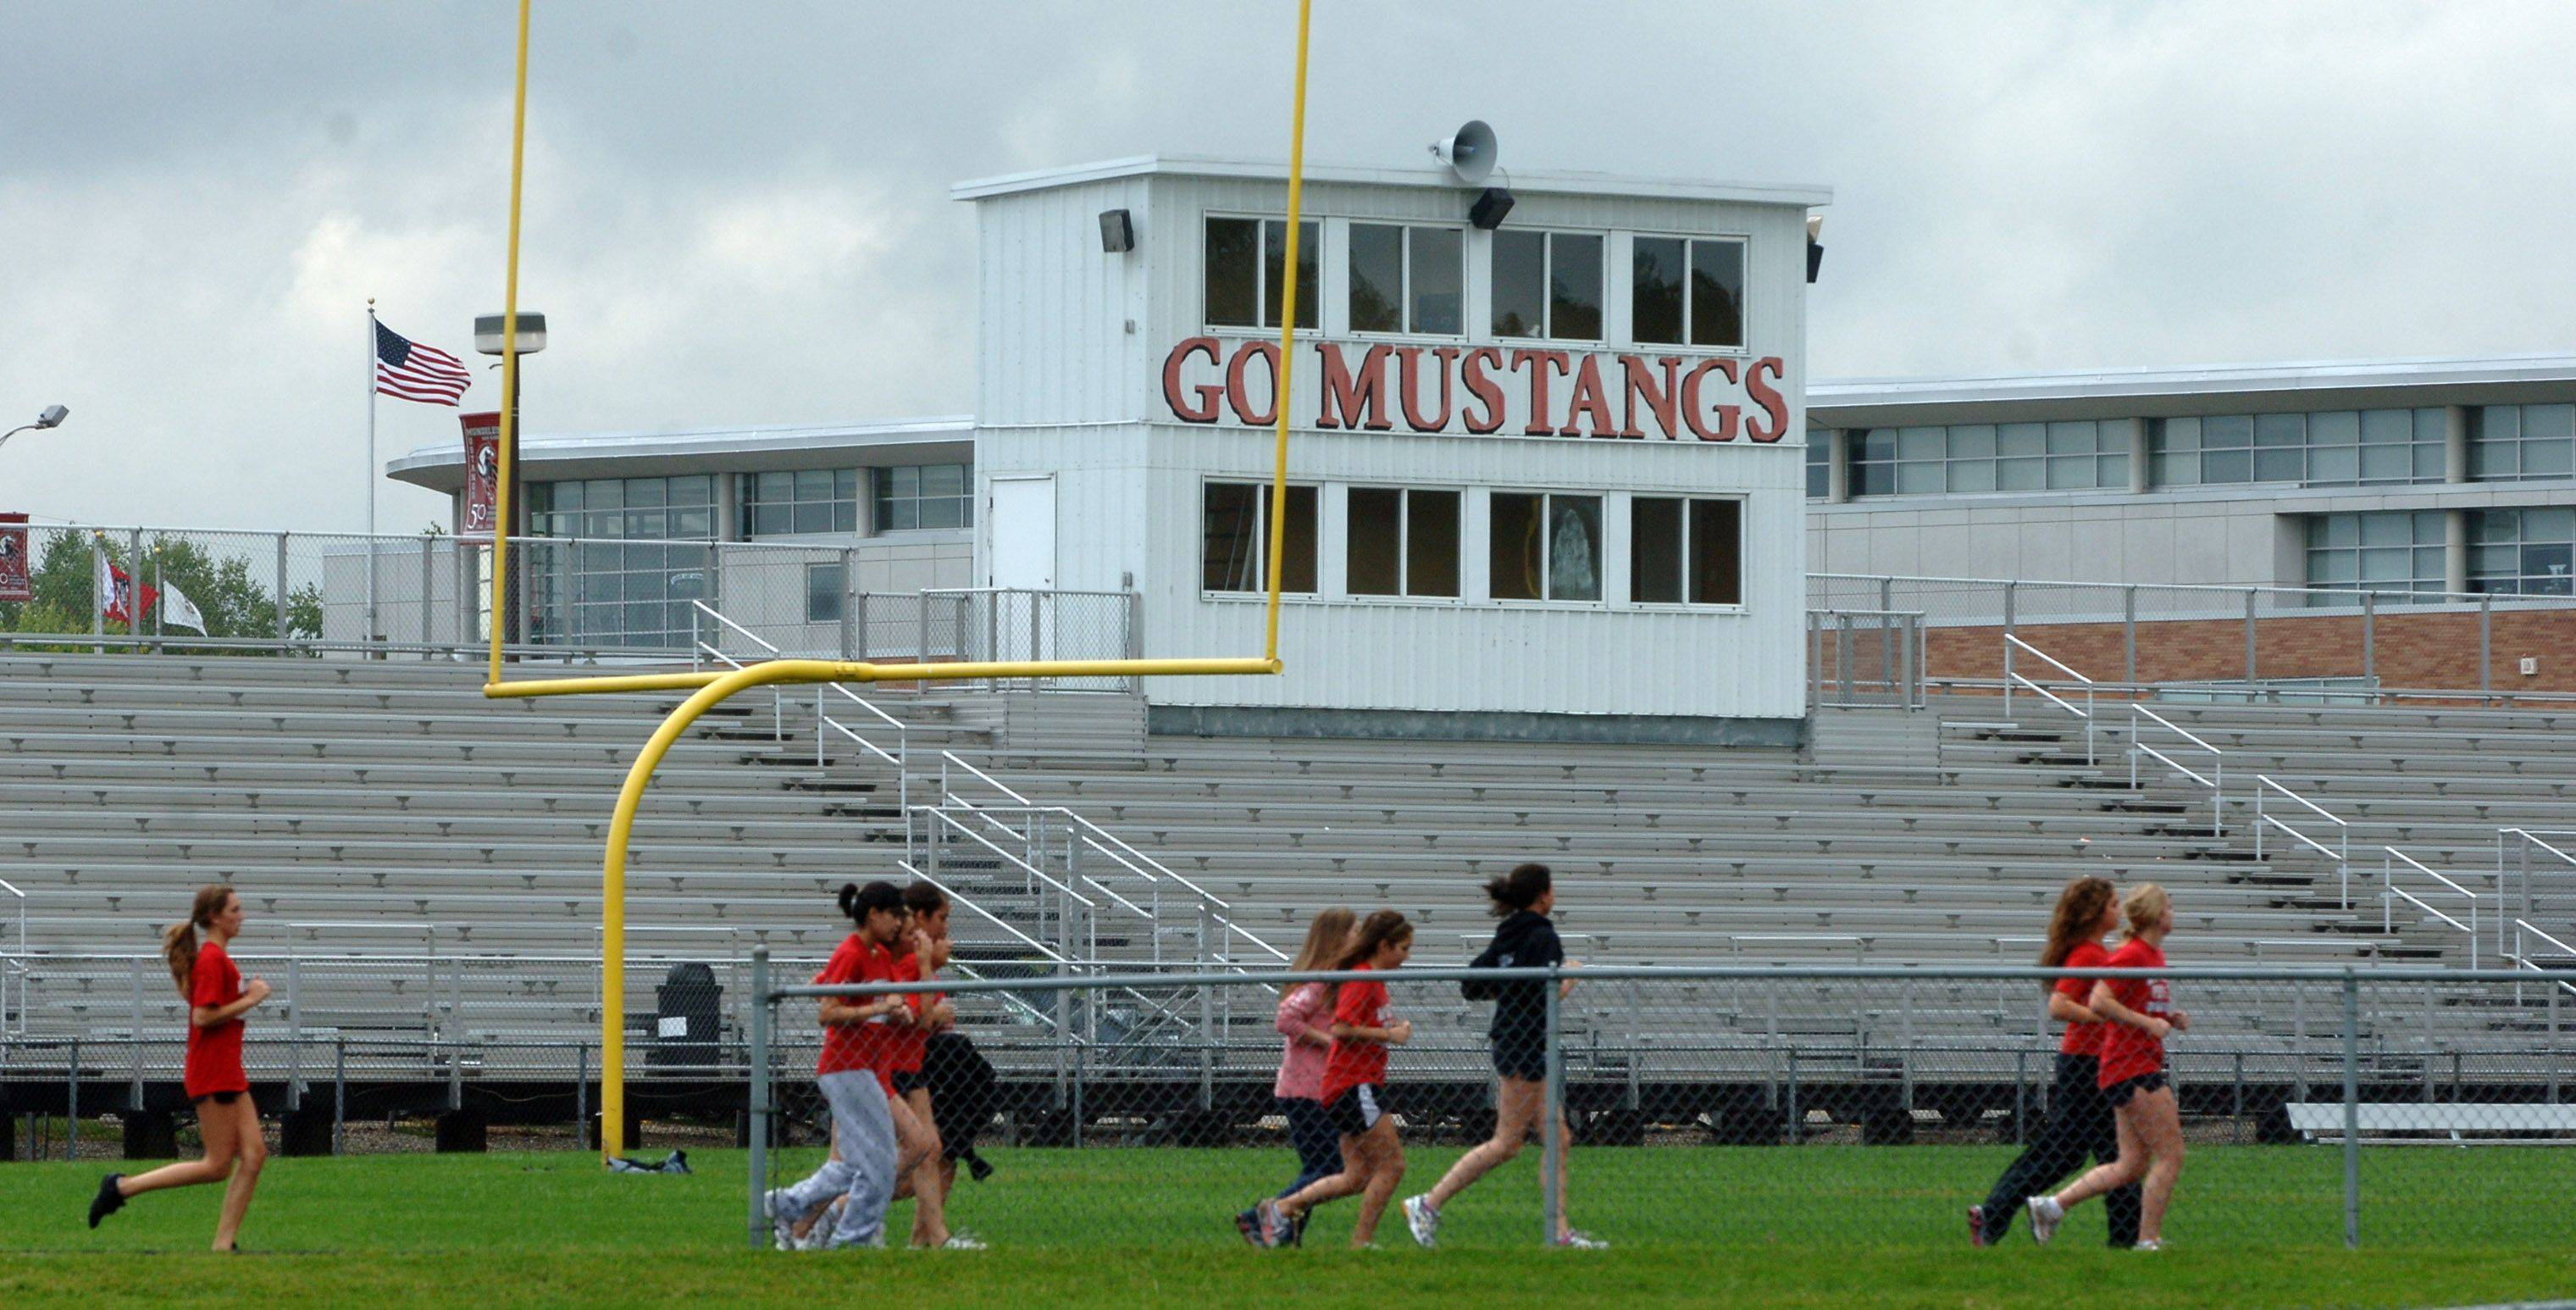 MHS board broke meetings law, attorney general's office says